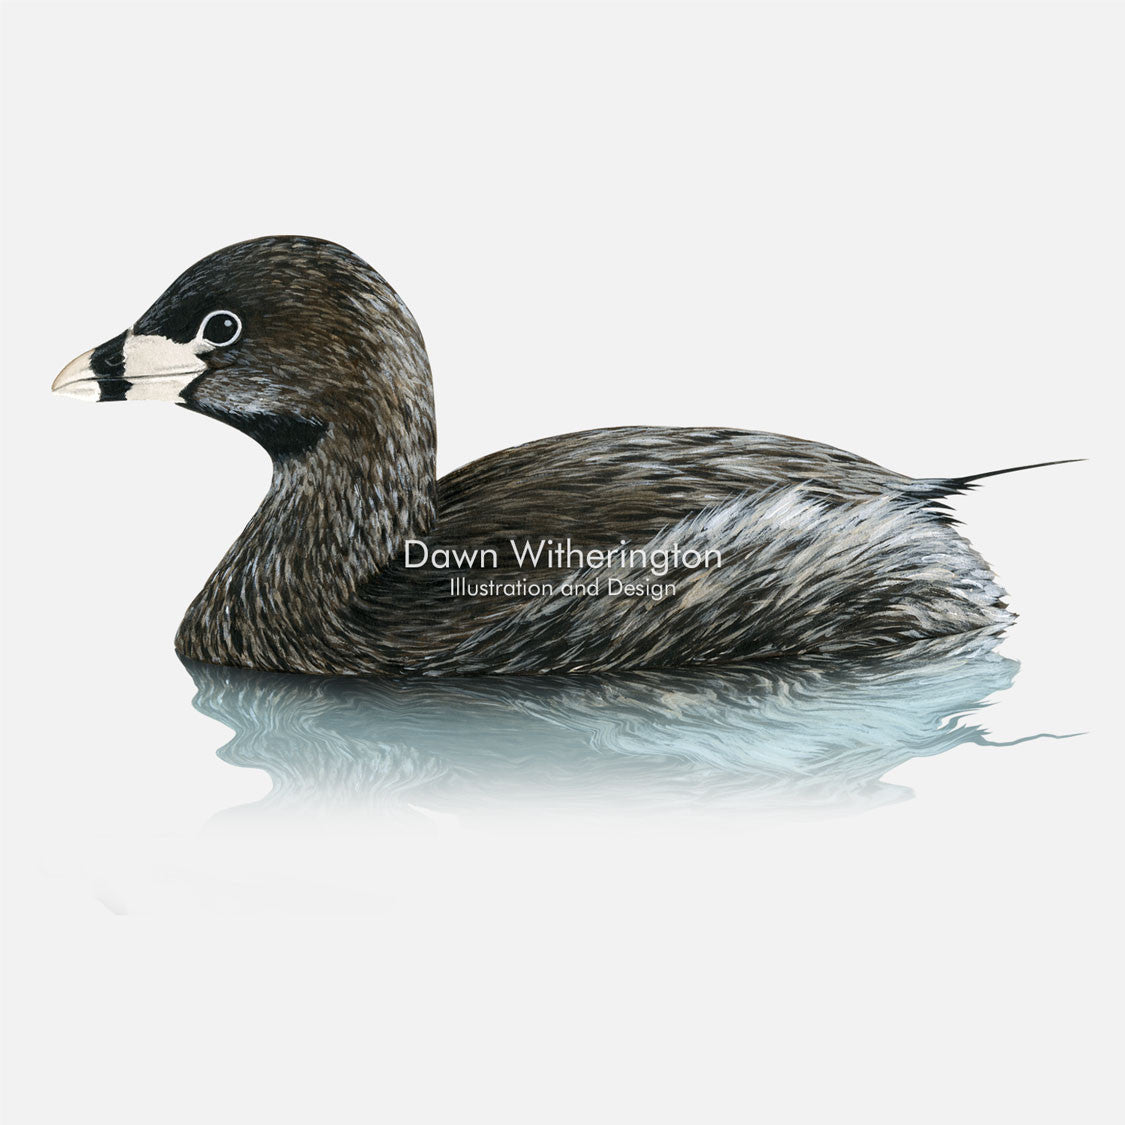 This beautiful illustration of a pied-billed grebe, Podilymbus podiceps, is biologically accurate in detail.